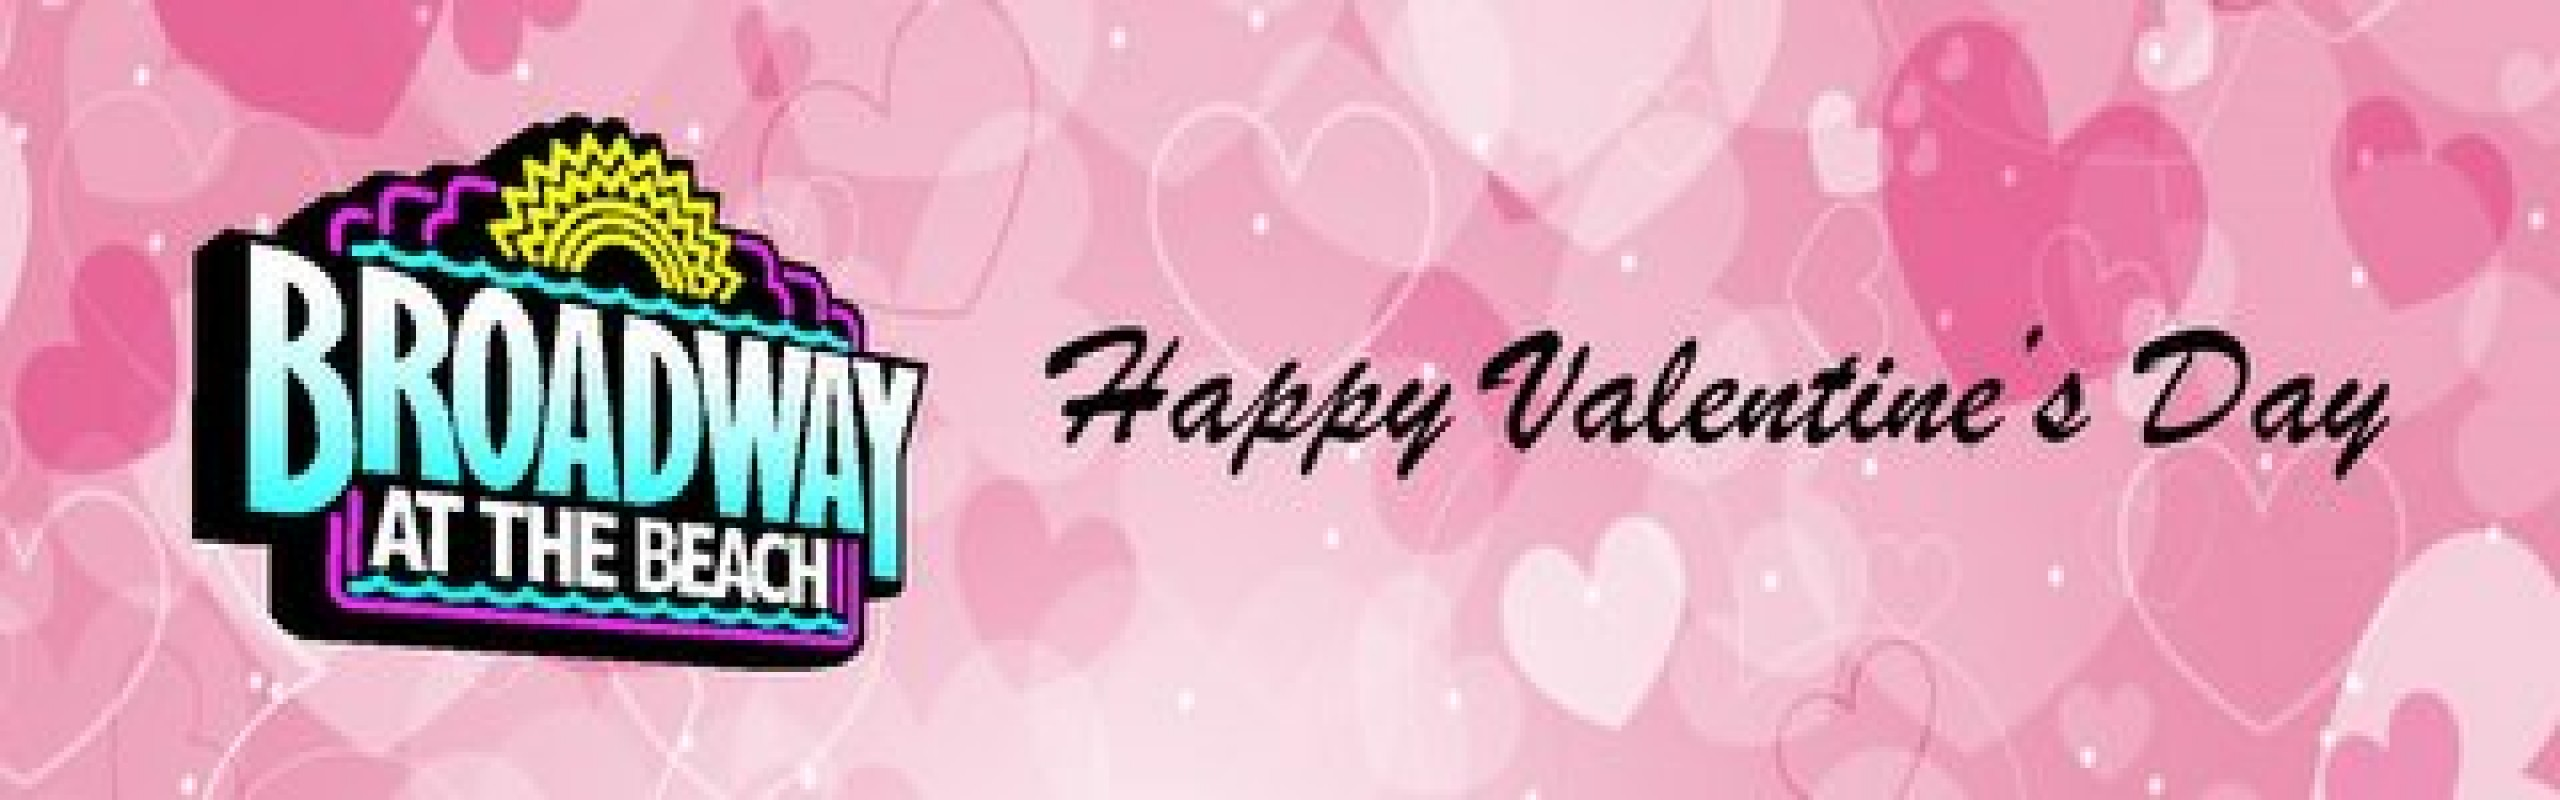 Happy Valentine S Day 10 Things We Love About Broadway